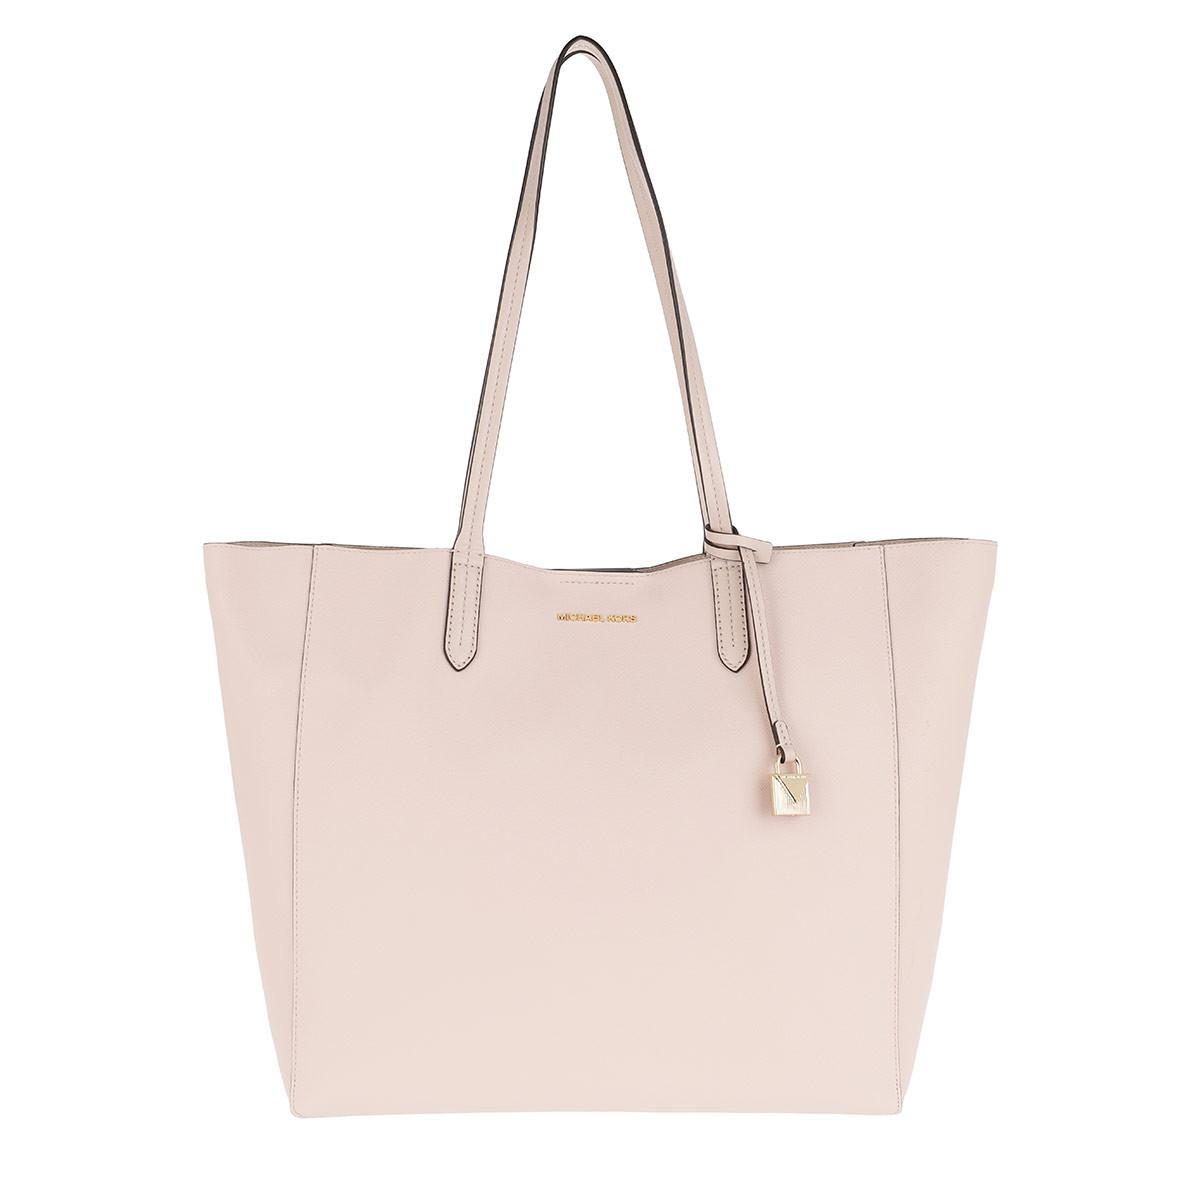 aac3a73c82f4 Michael Kors Penny Lg Tote Convertible Soft Pink in Pink - Lyst